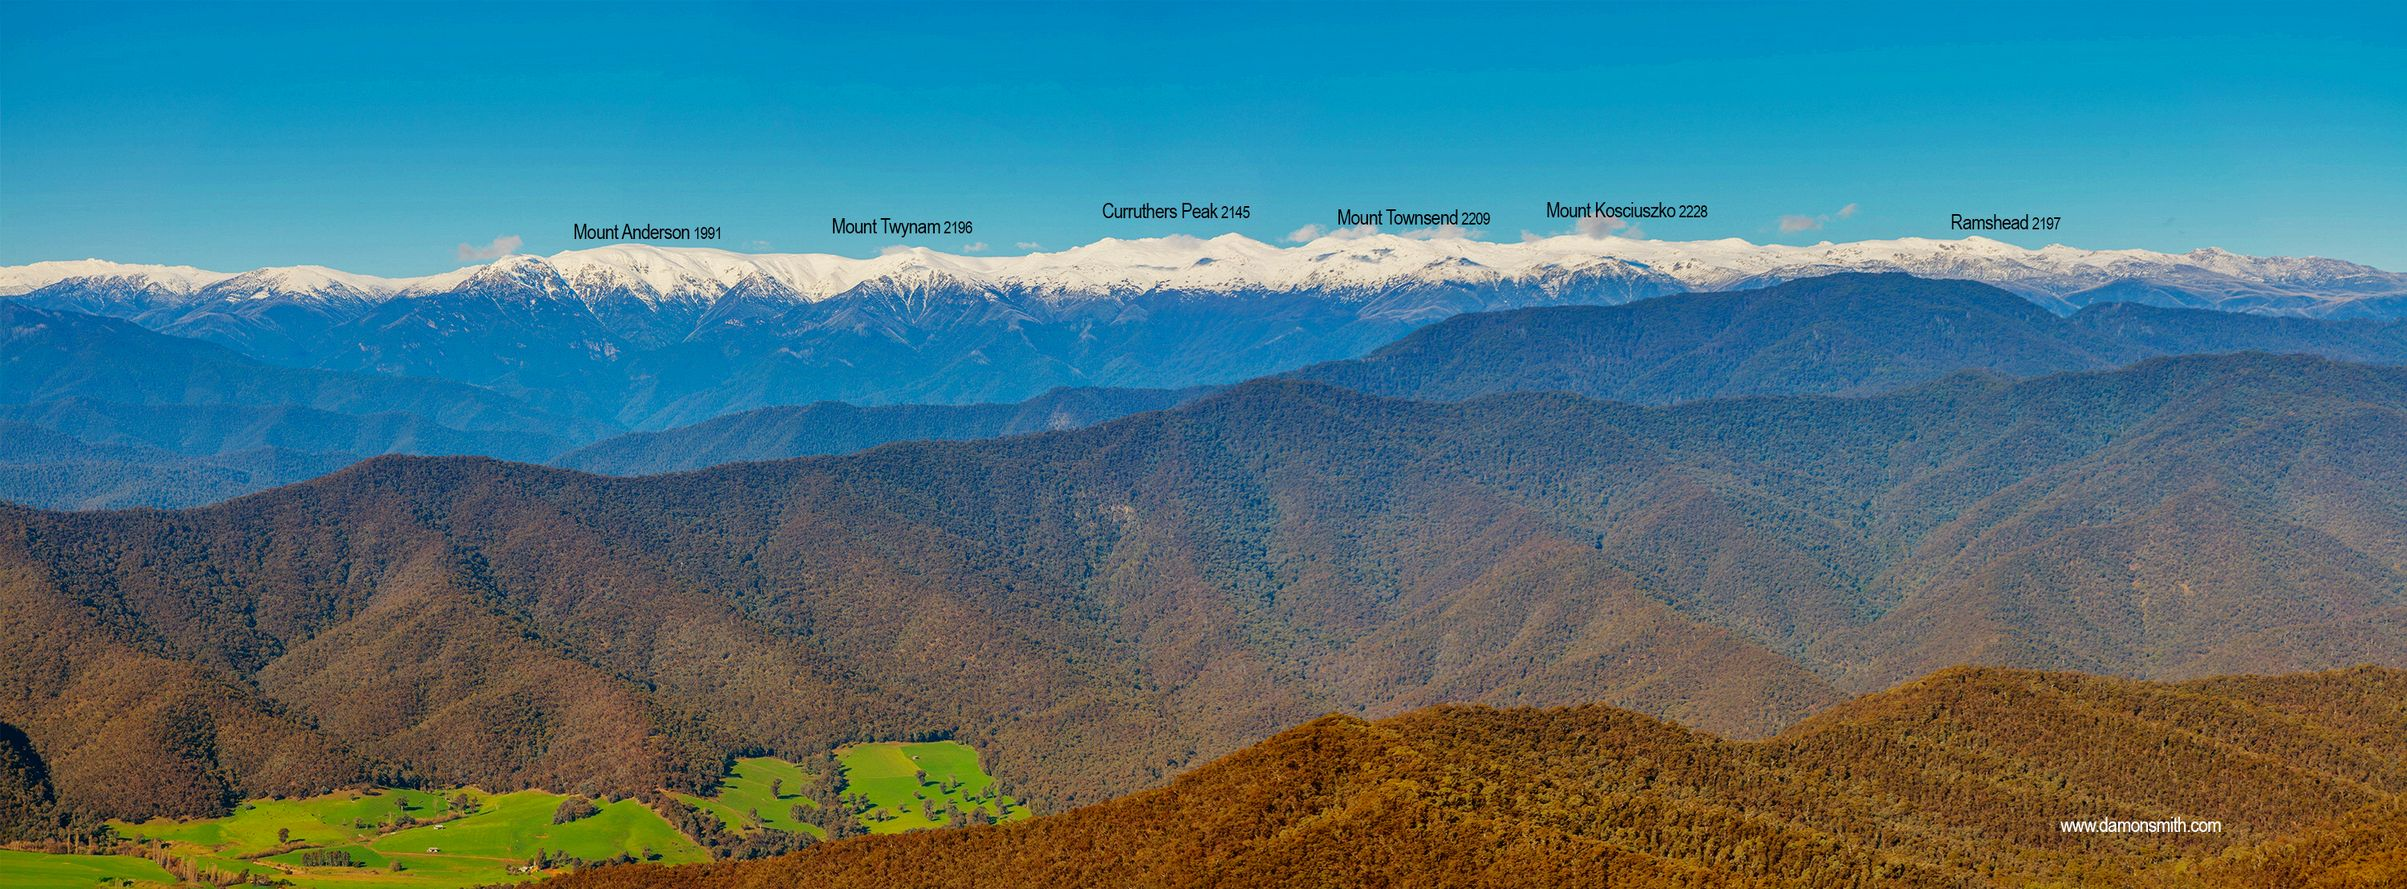 Snowy Mountains Panorama 1 -4596-97-98